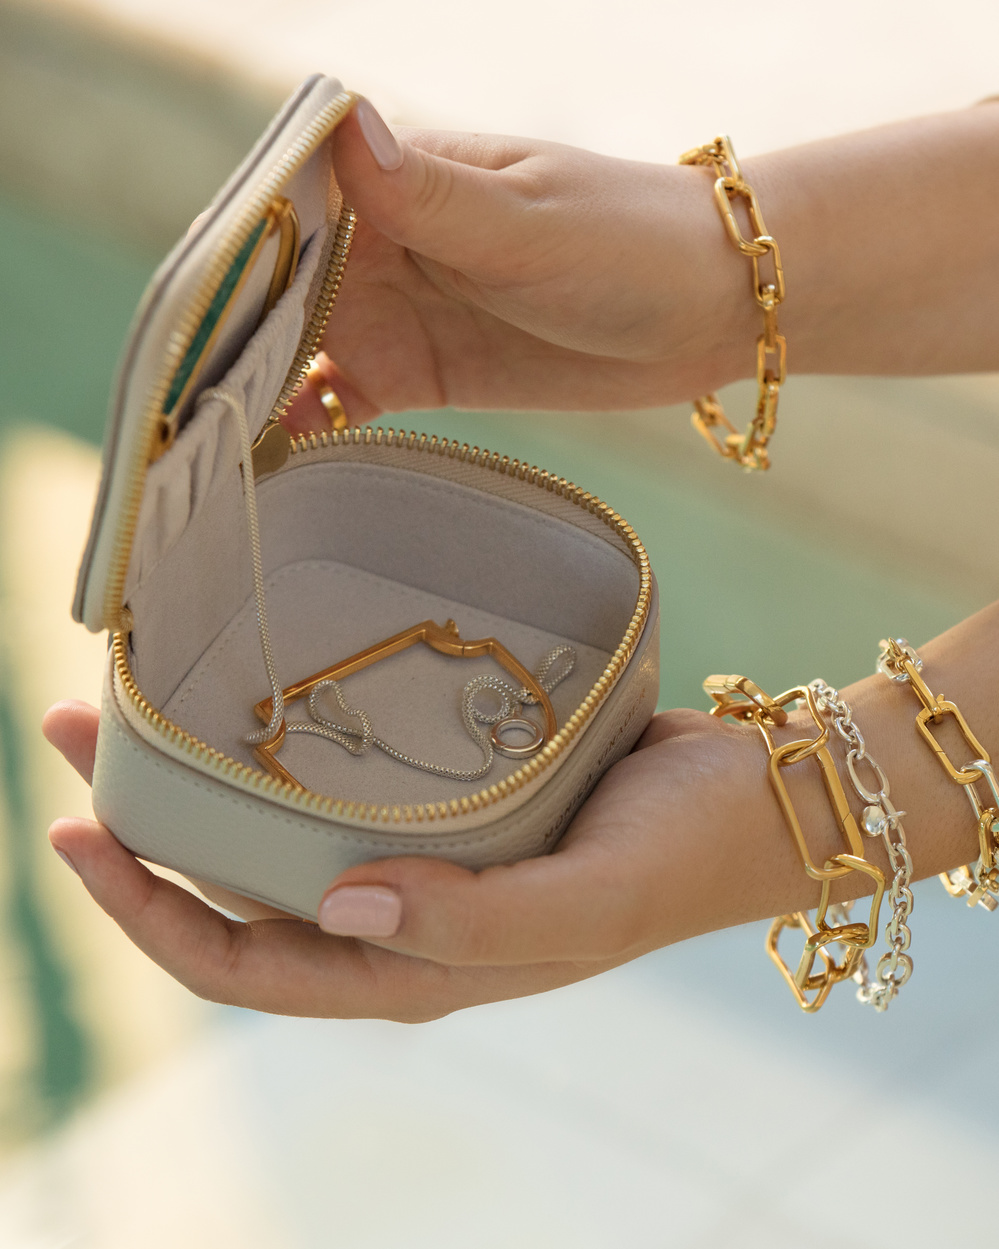 Model holding open a Monica Vinader jewellery box, wearing a mix of gold and silver pieces